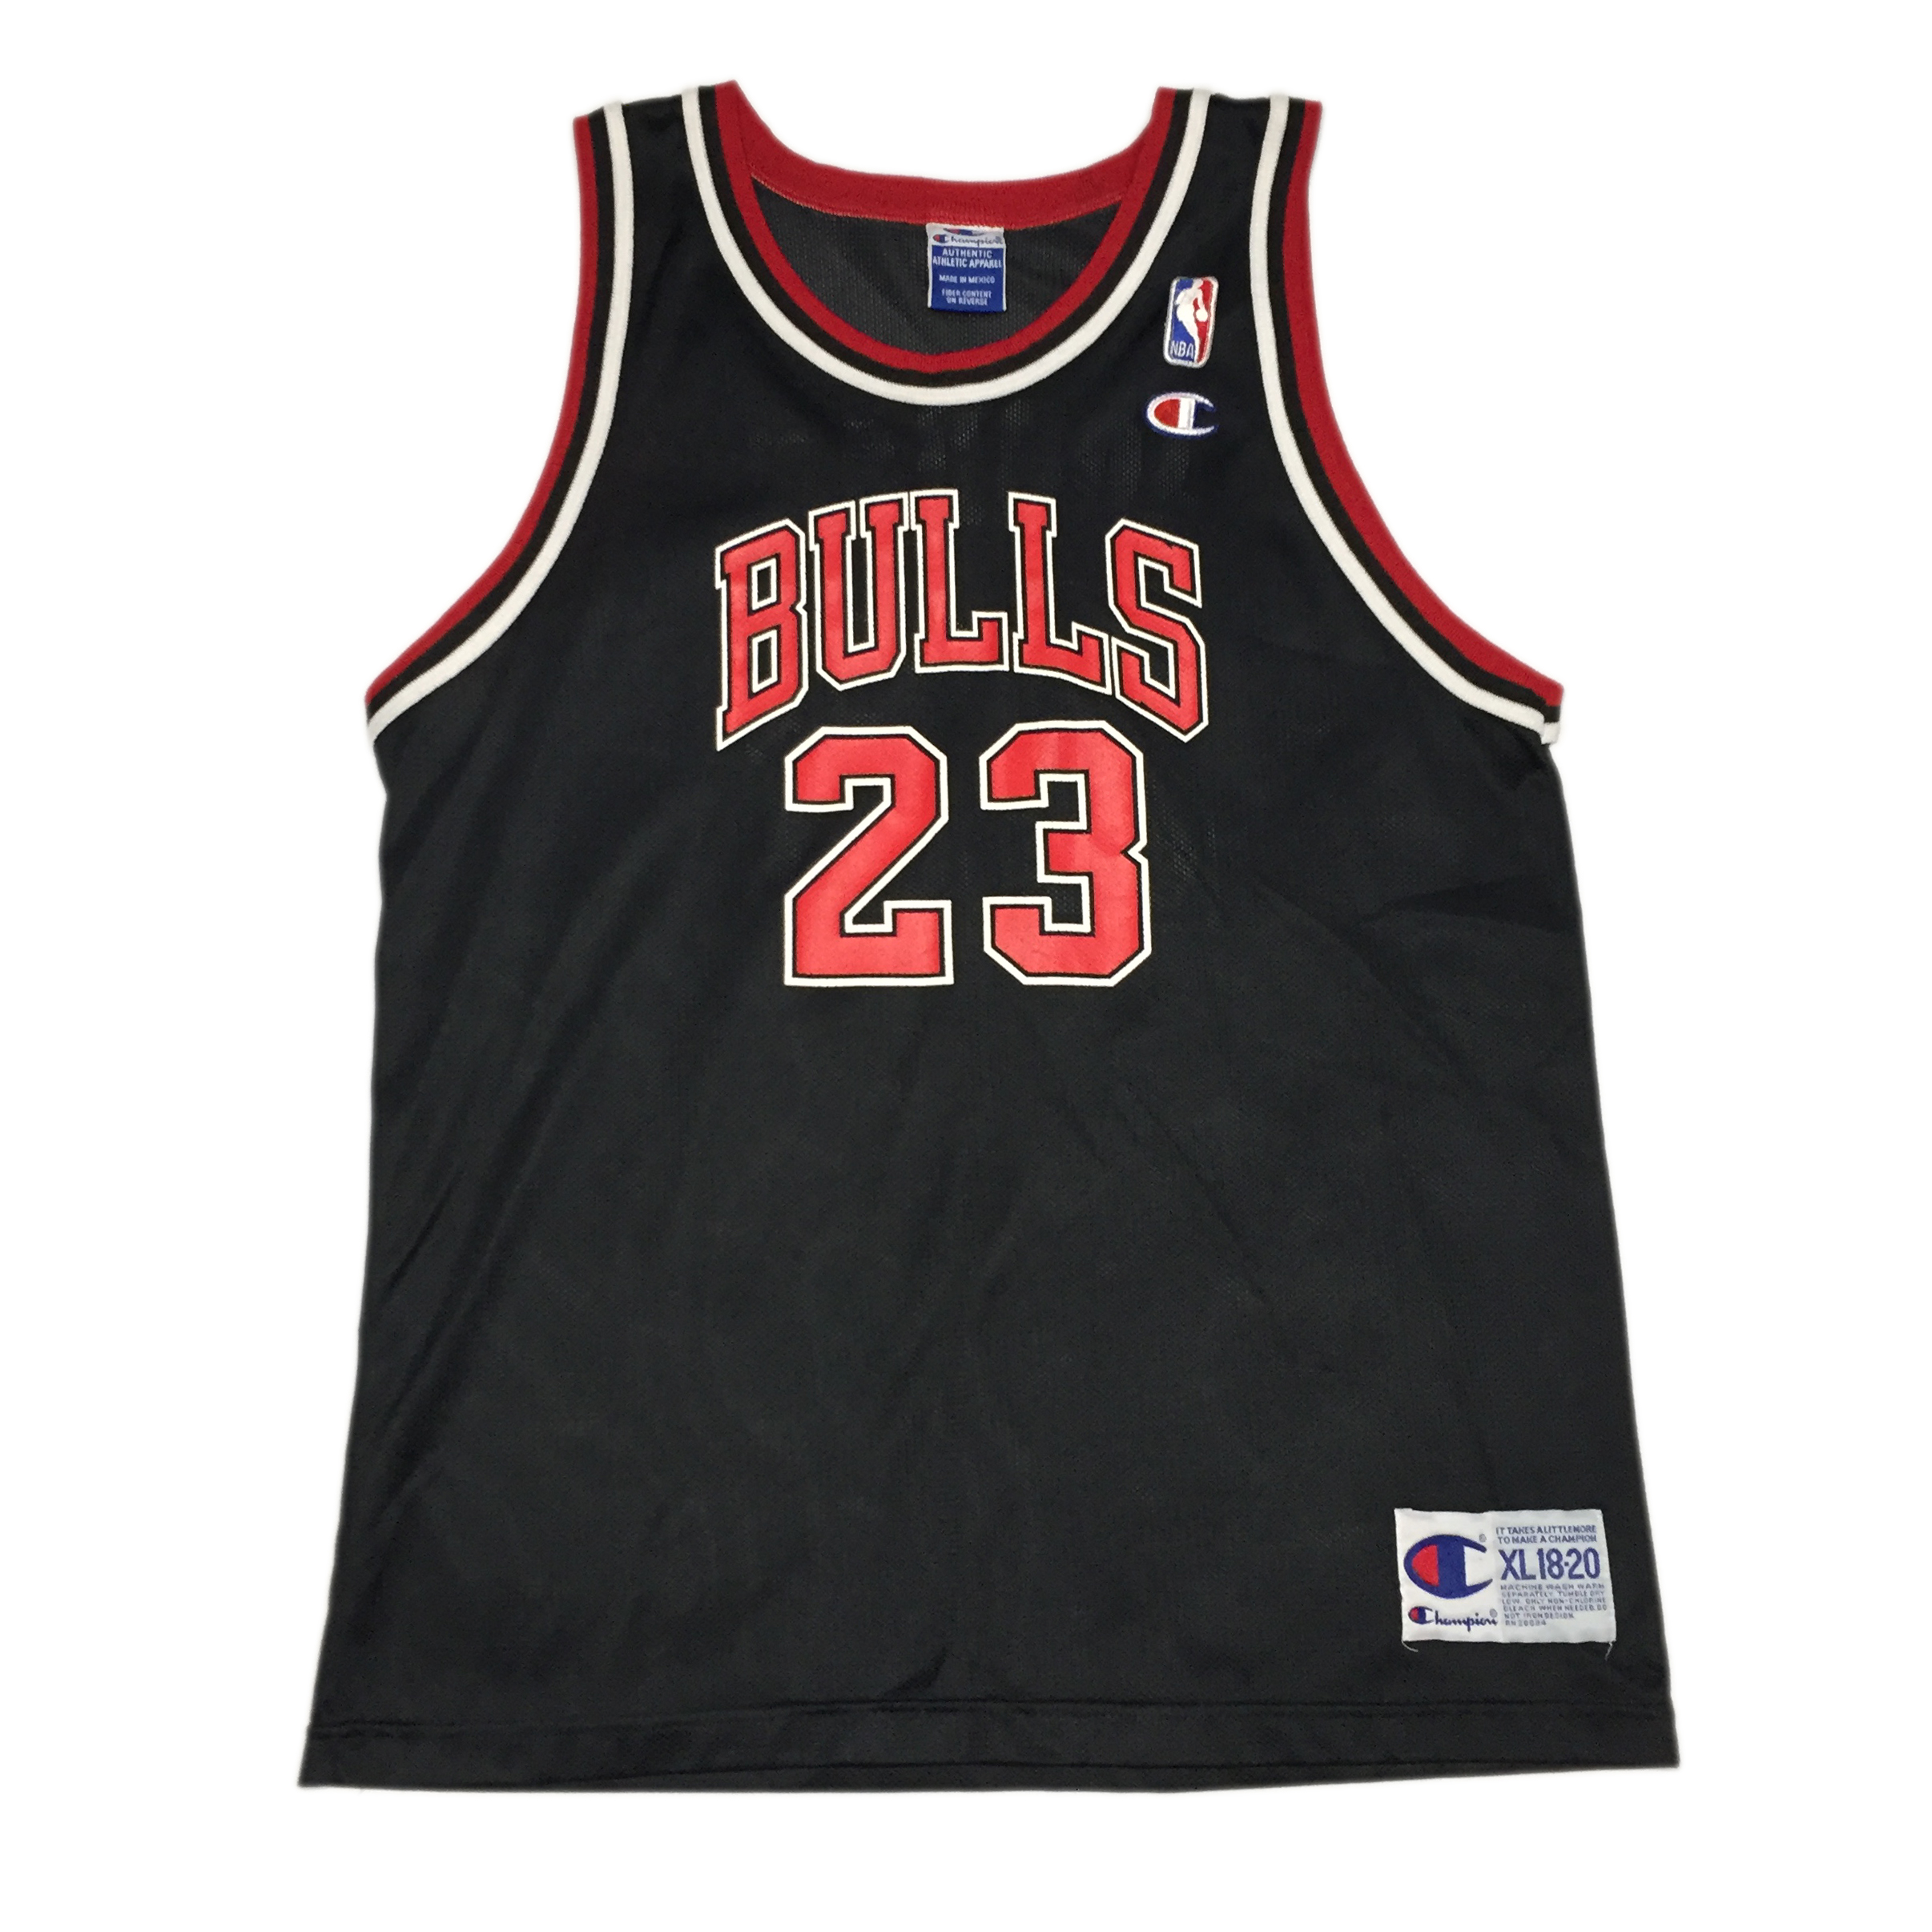 the best attitude f4de0 c1f81 VINTAGE CHAMPION MICHAEL JORDAN MJ 23 CHICAGO BULLS JERSEY IN BLACK